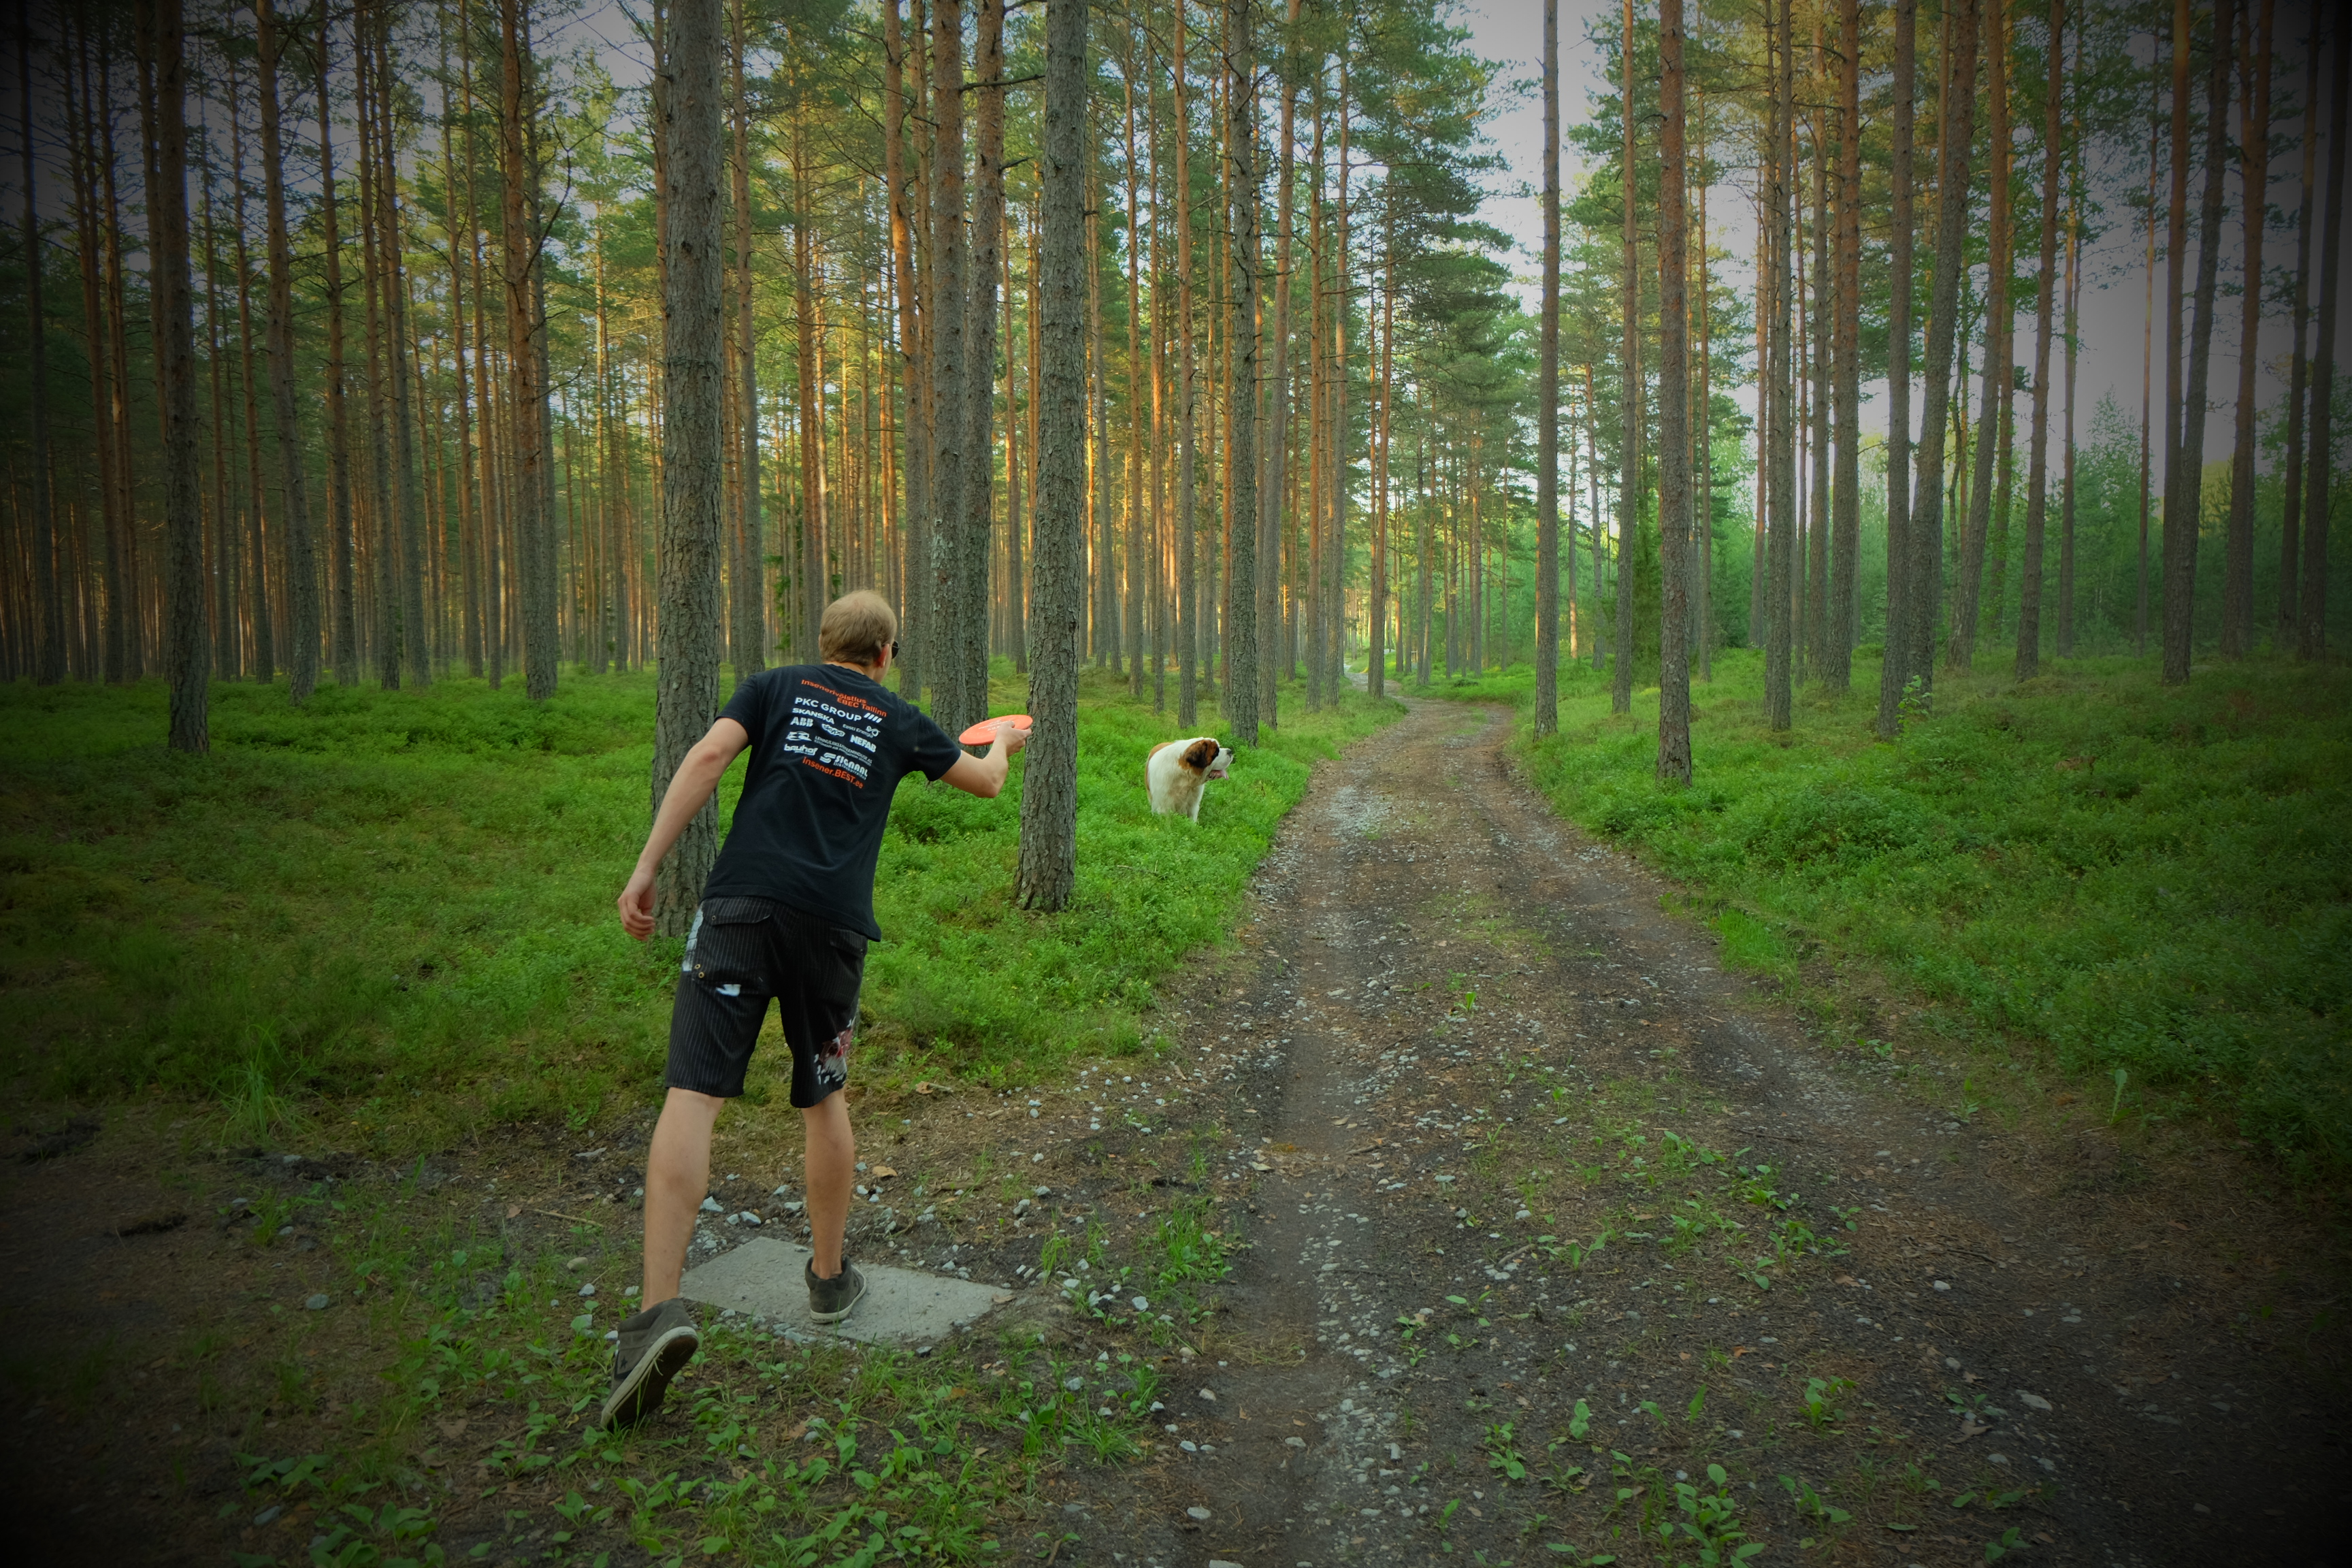 discgolf in Padise. Adventure farm Disc golf has 18 baskets. visiting territory 5€ / per person